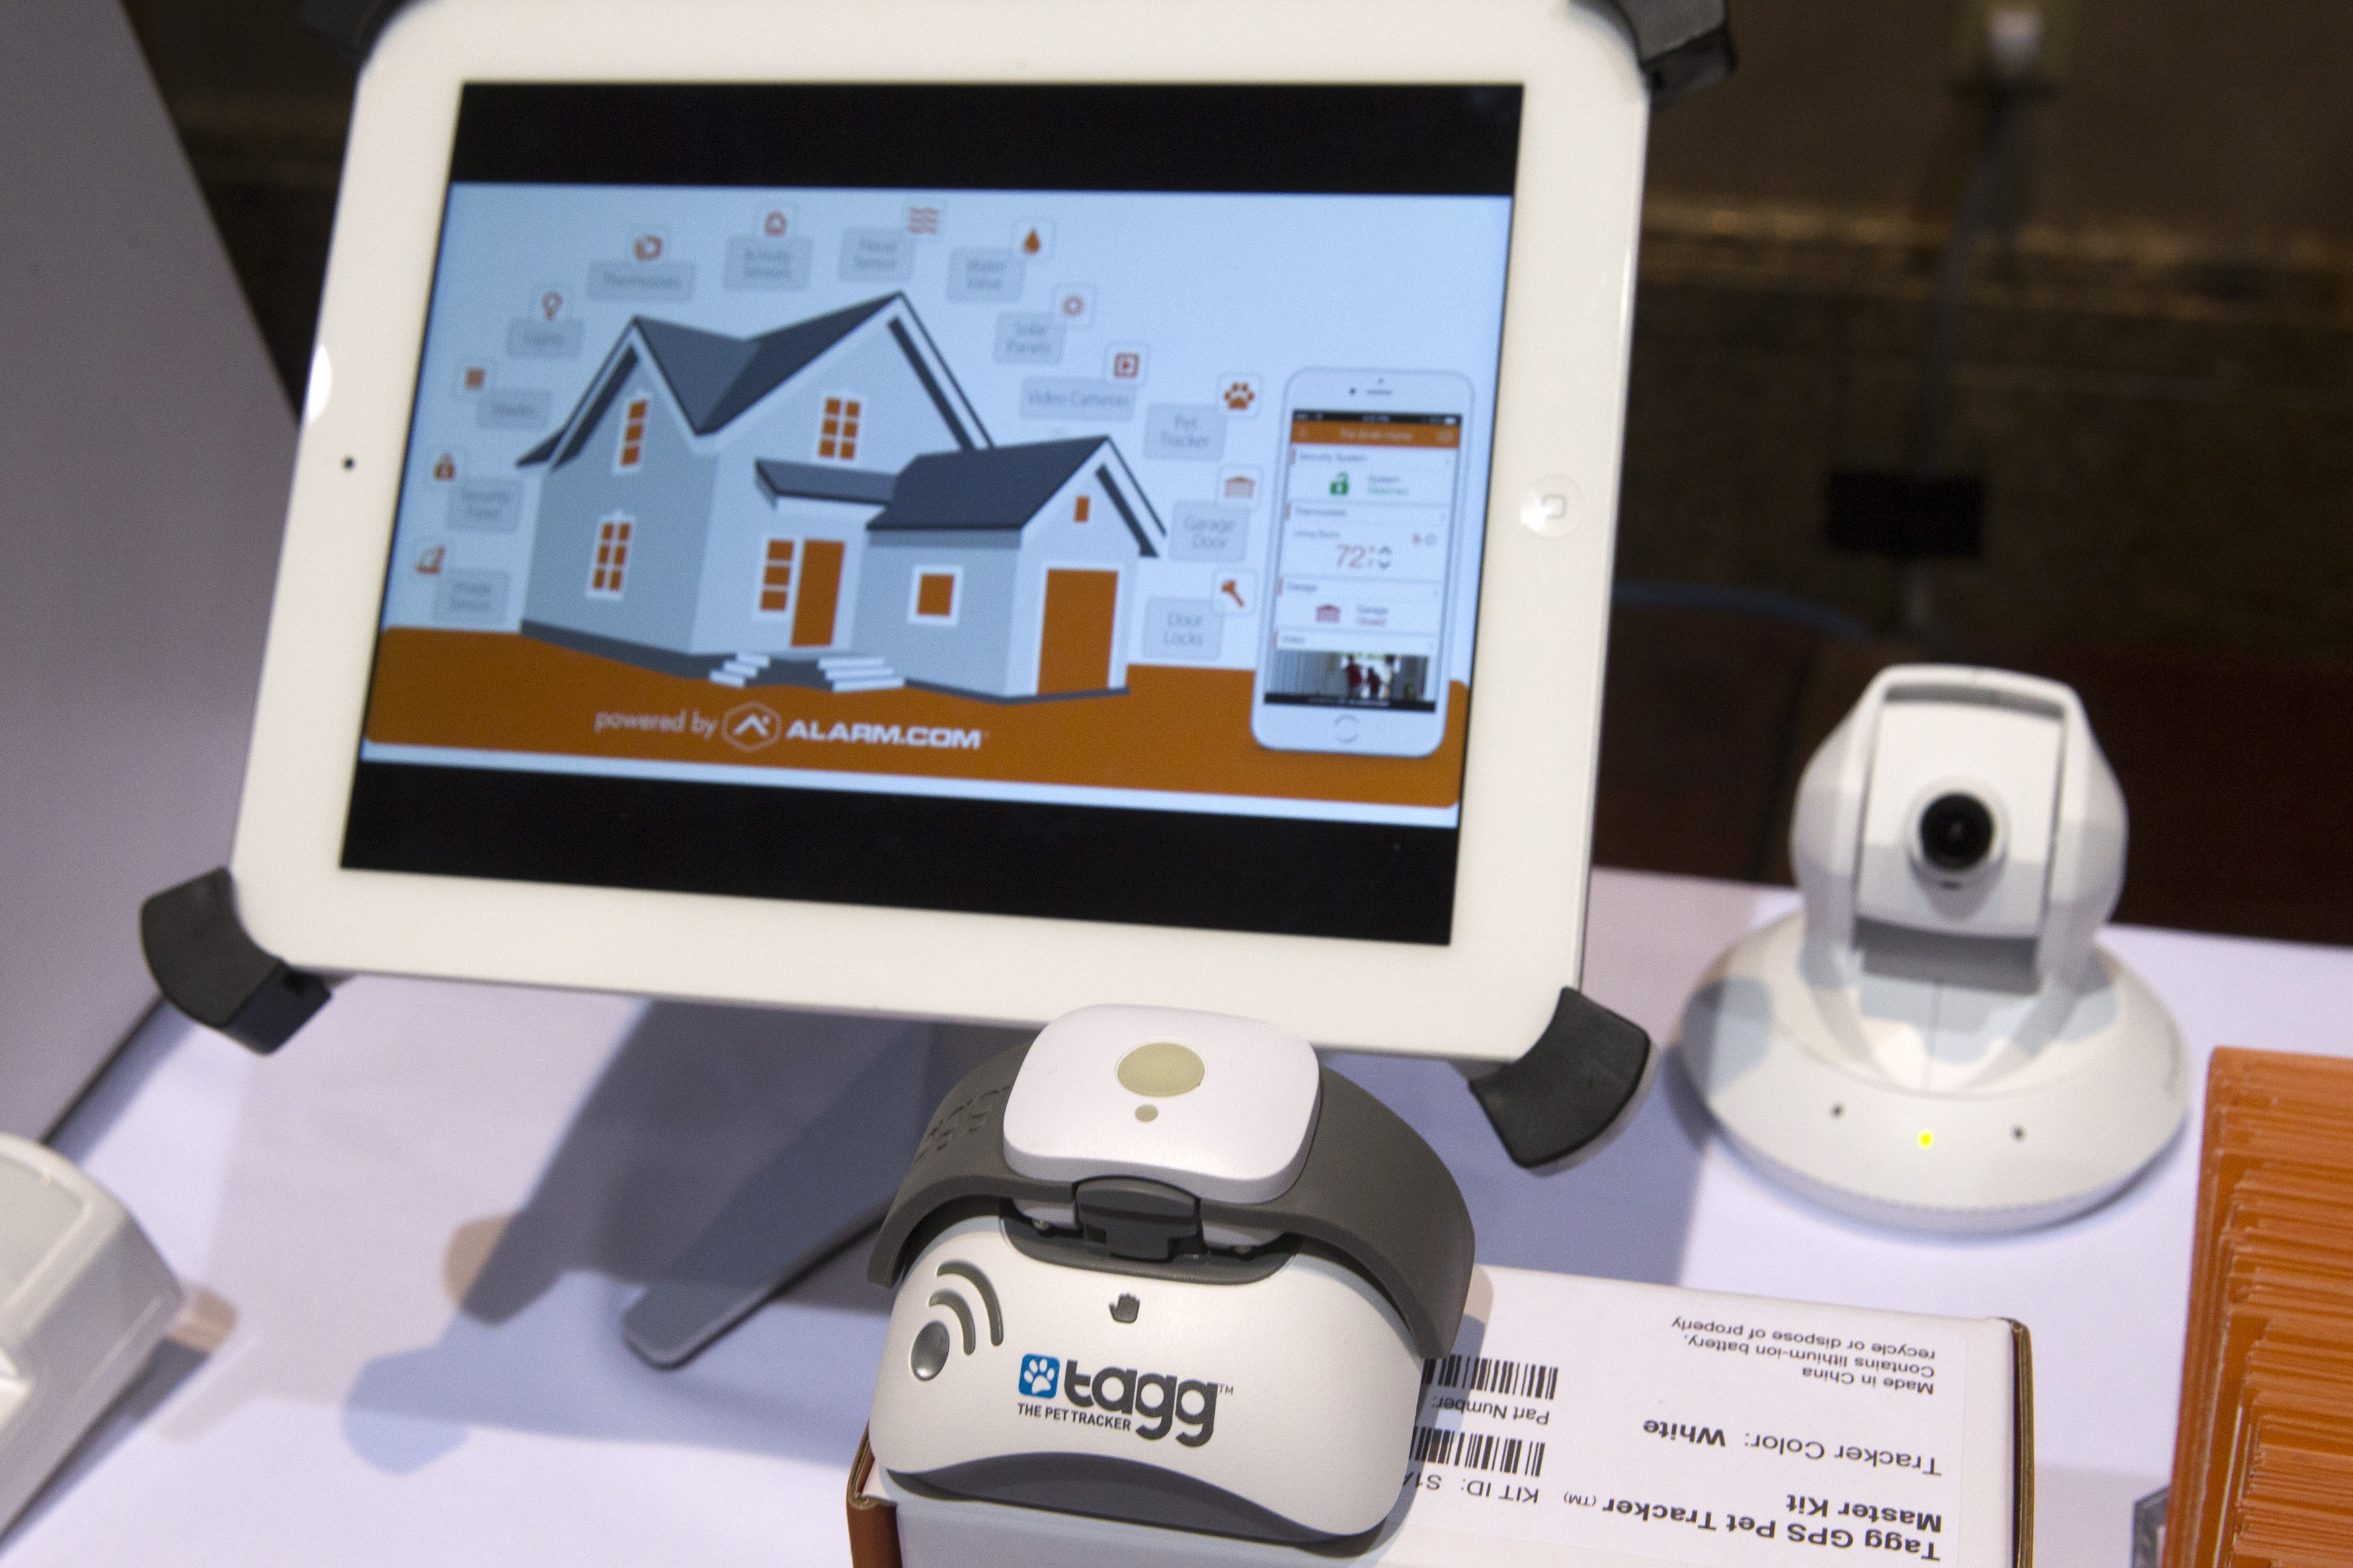 Tagg pet tracker at shown in an Alarm.com booth during the 2015 International Consumer Electronics Show in Las Vegas